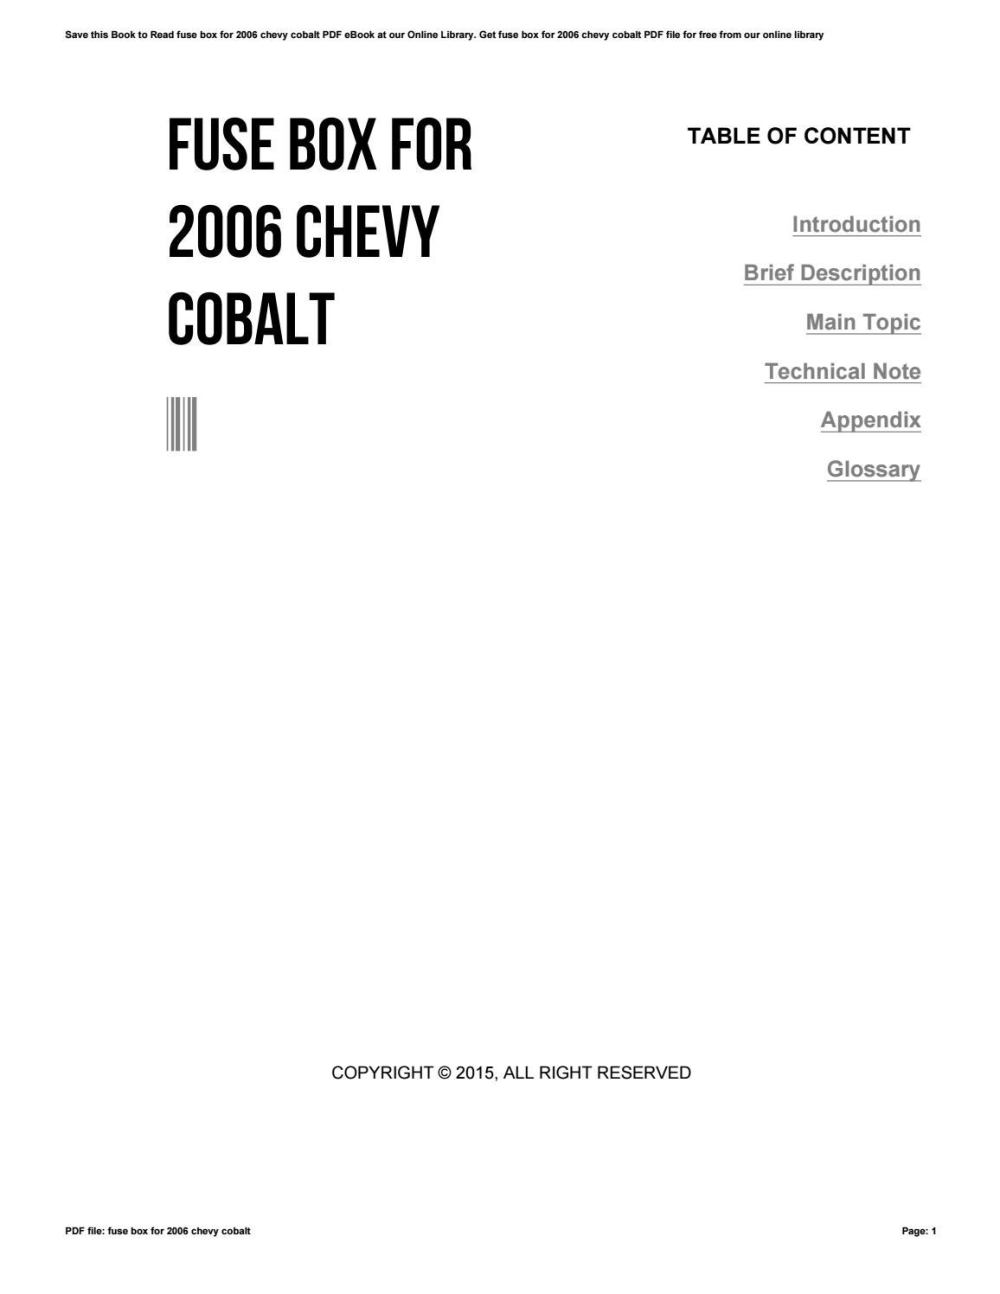 medium resolution of fuse box for 2006 chevy cobalt by ppetw88 issuu